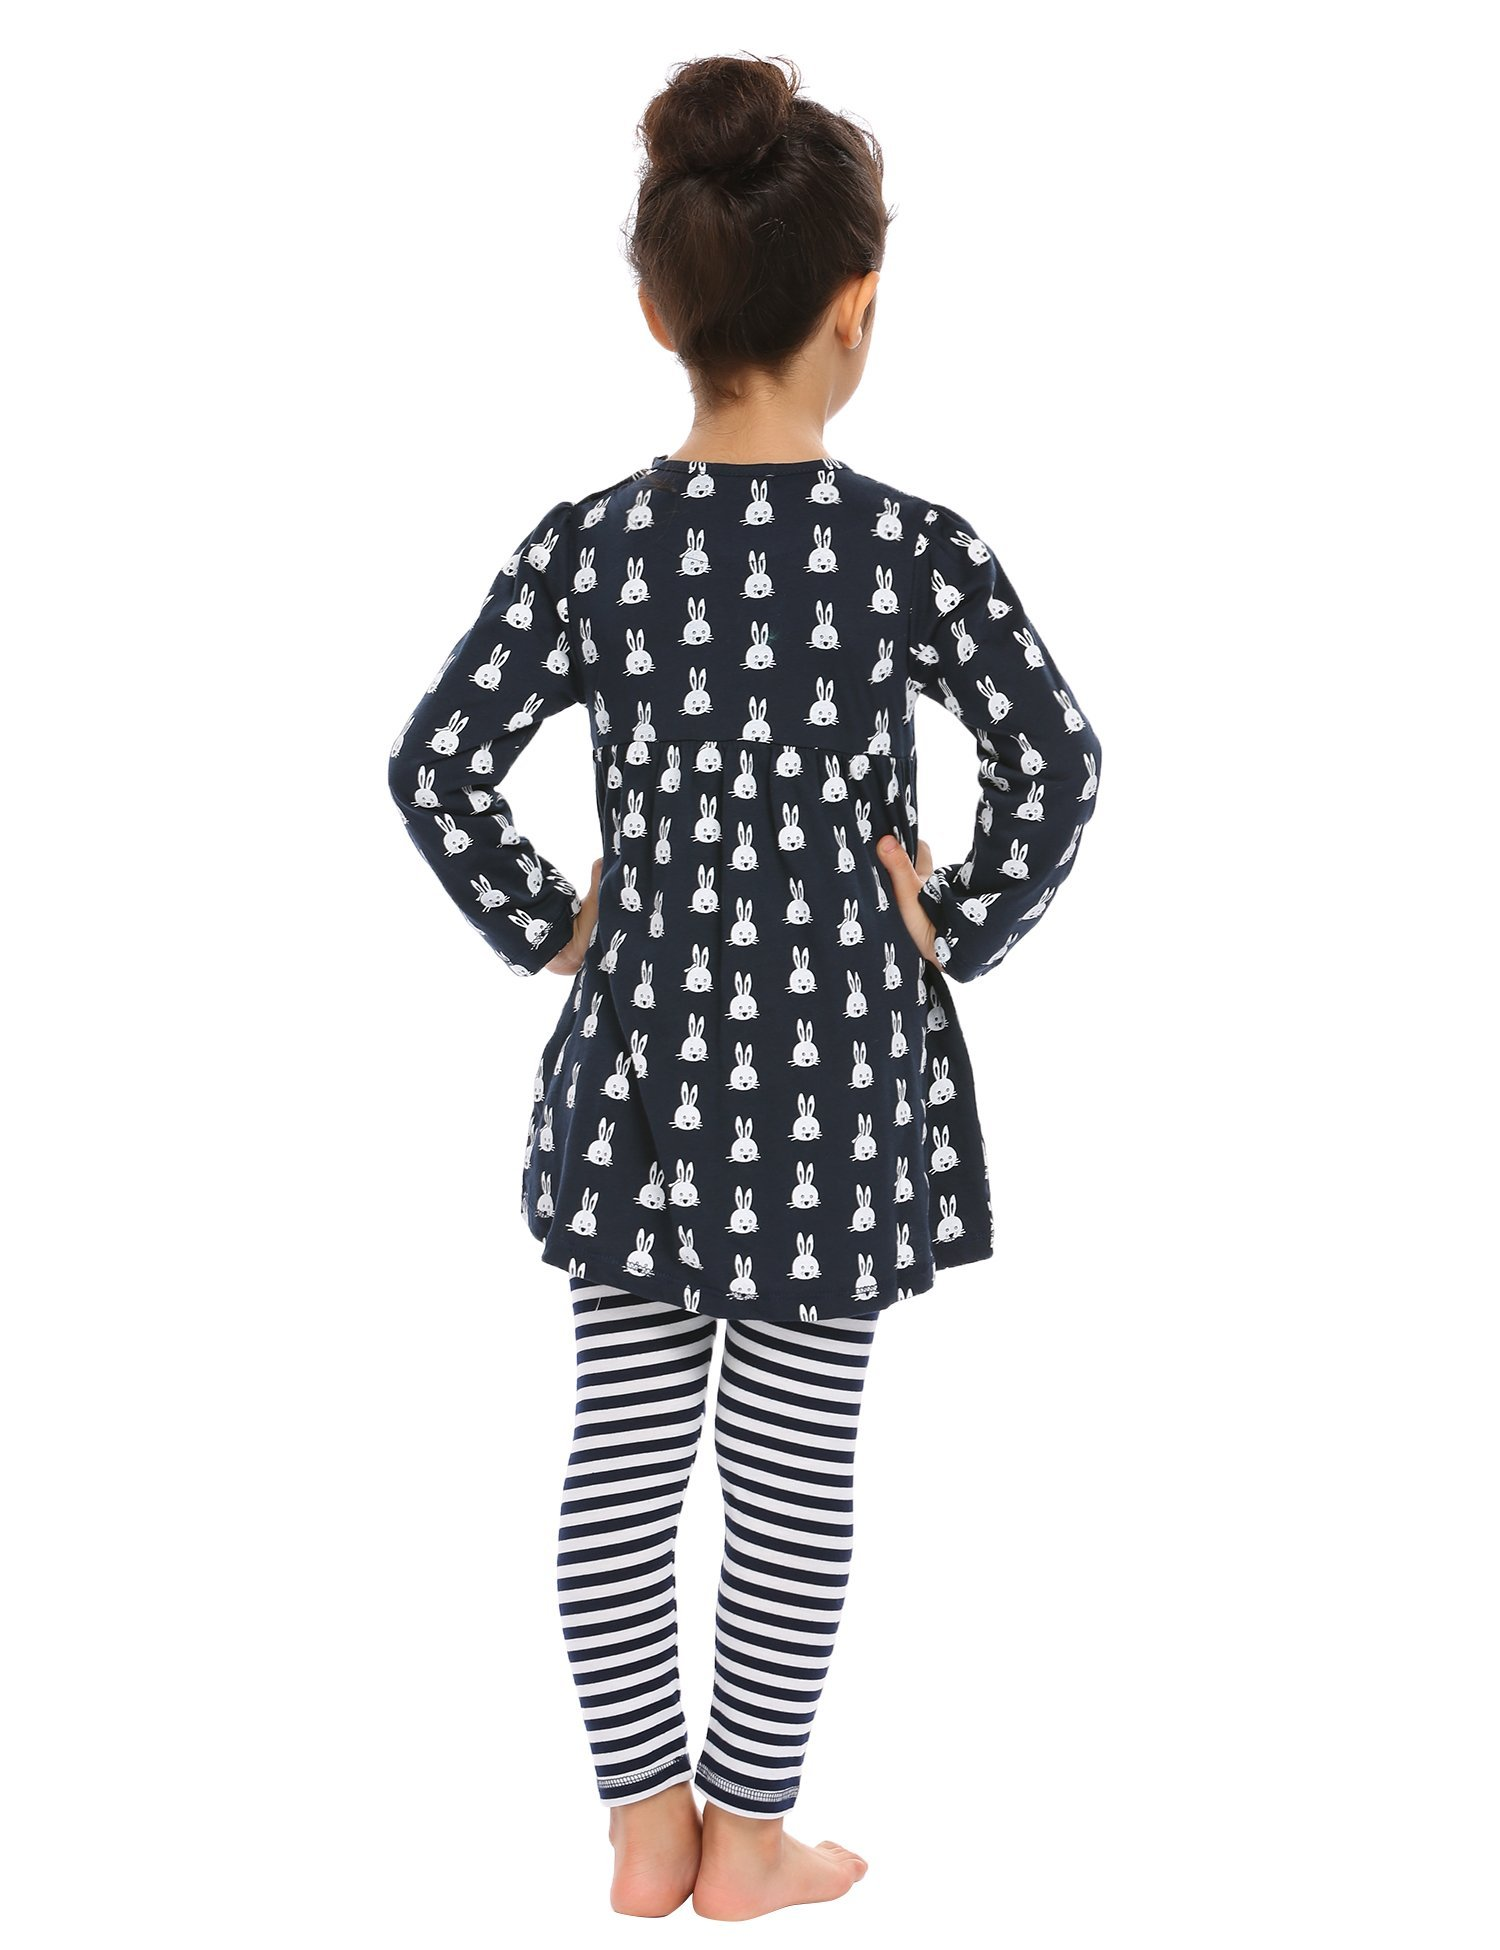 Arshiner Little Girls Long Sleeve Cute Rabbit Print with Pockets Cotton Outfit 12 pcs Pants Sets Top+Legging,Navy Blue,130(7-8years old) by Arshiner (Image #6)